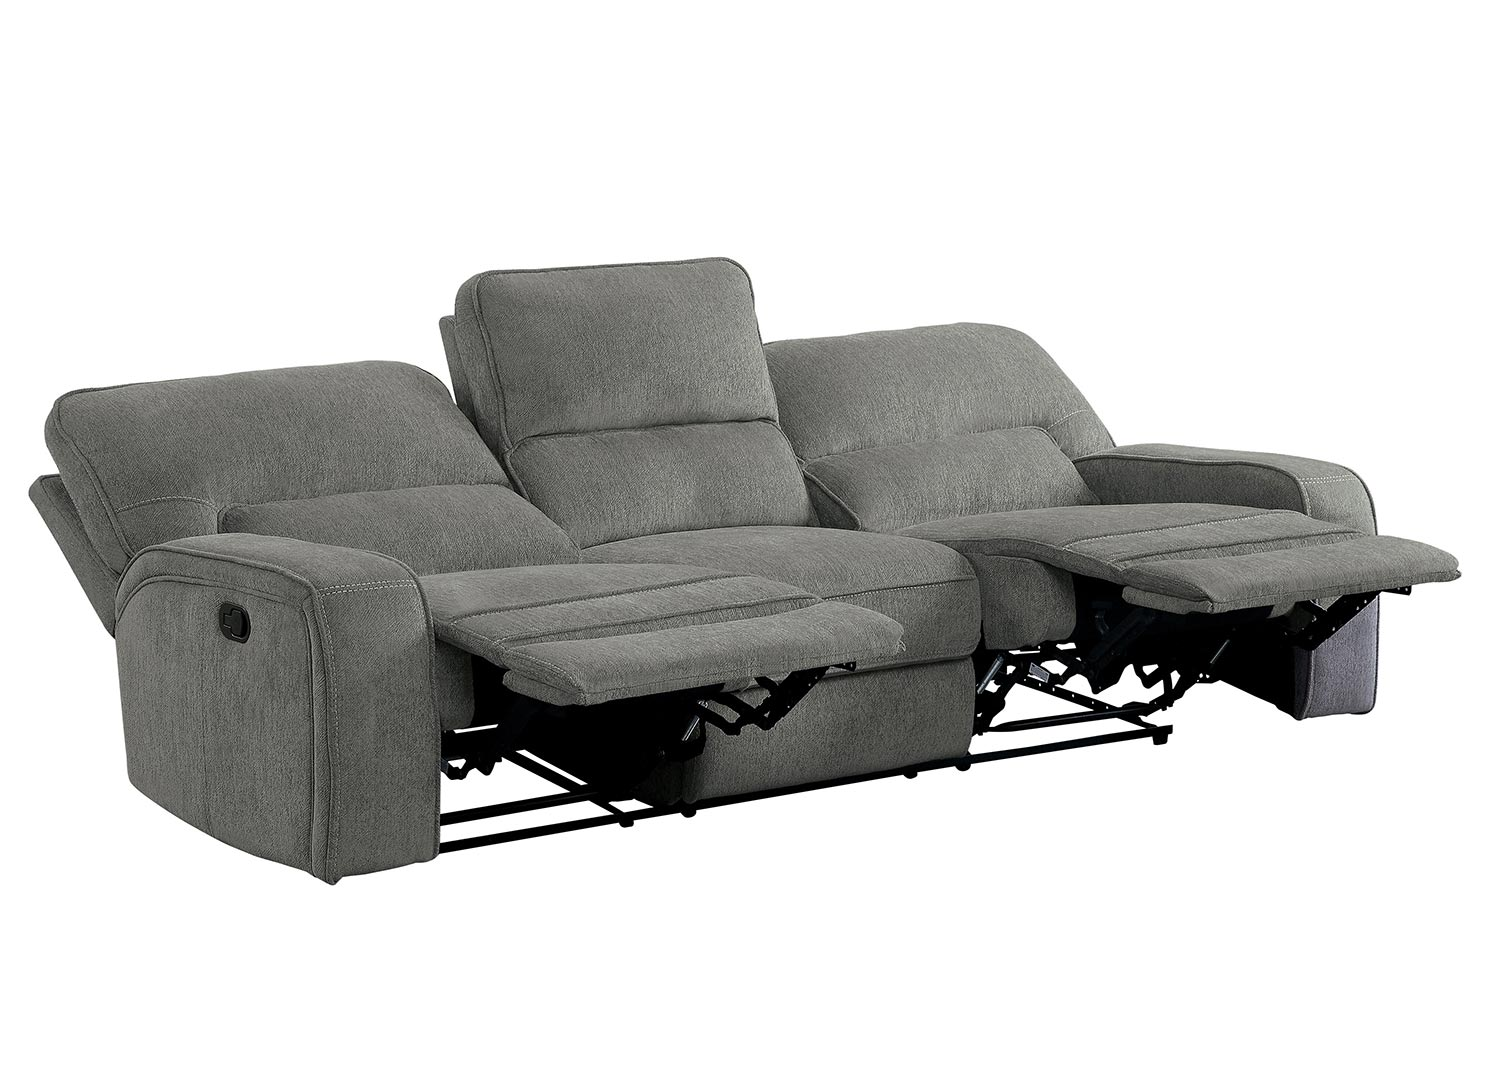 Homelegance Borneo Double Reclining Sofa - Mocha